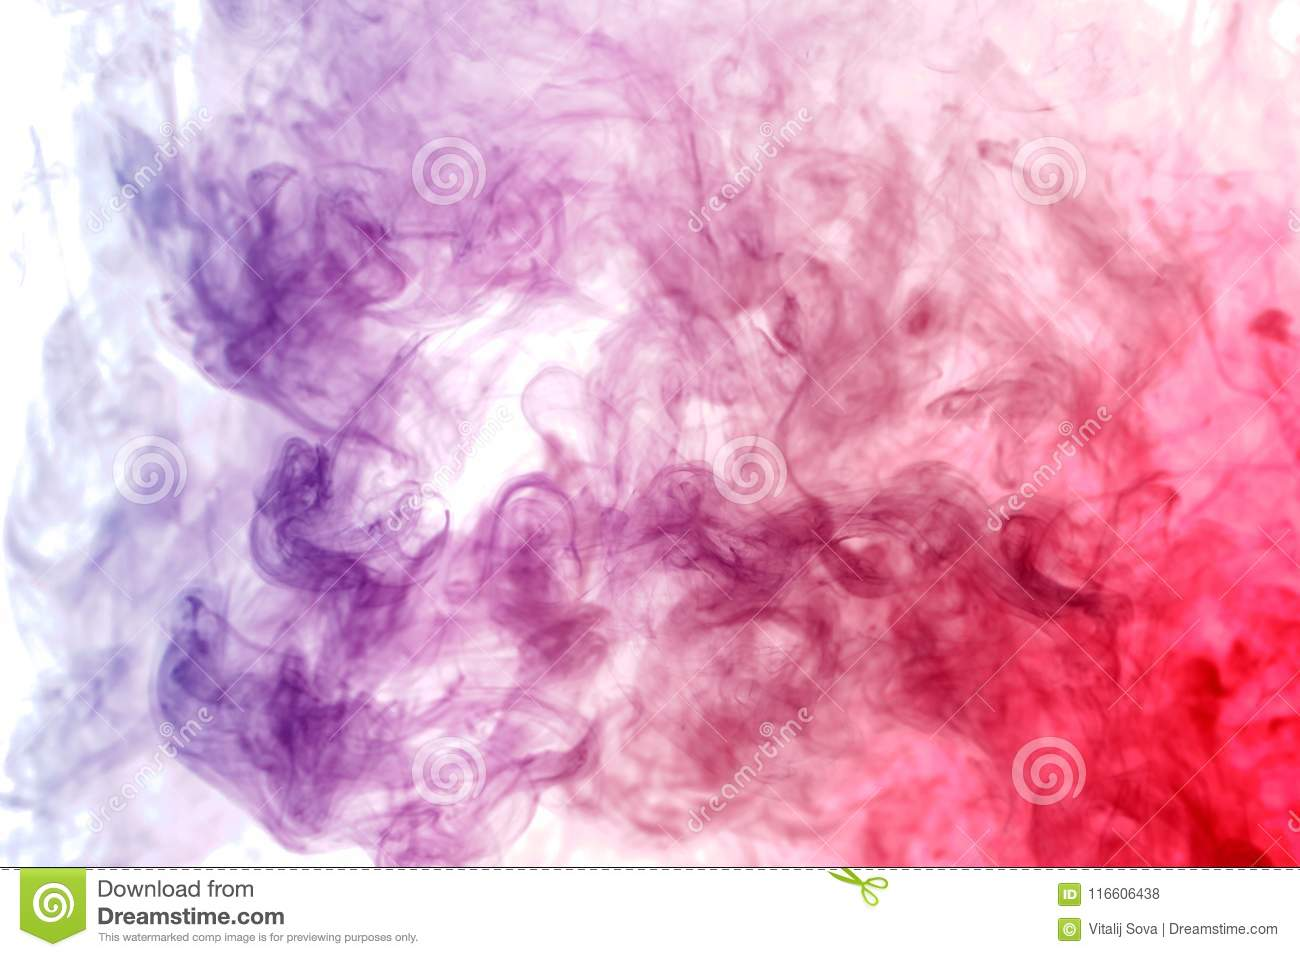 background from the smoke of vape stock photo image of energy dense 116606438 https www dreamstime com background smoke vape red blue purple white image116606438